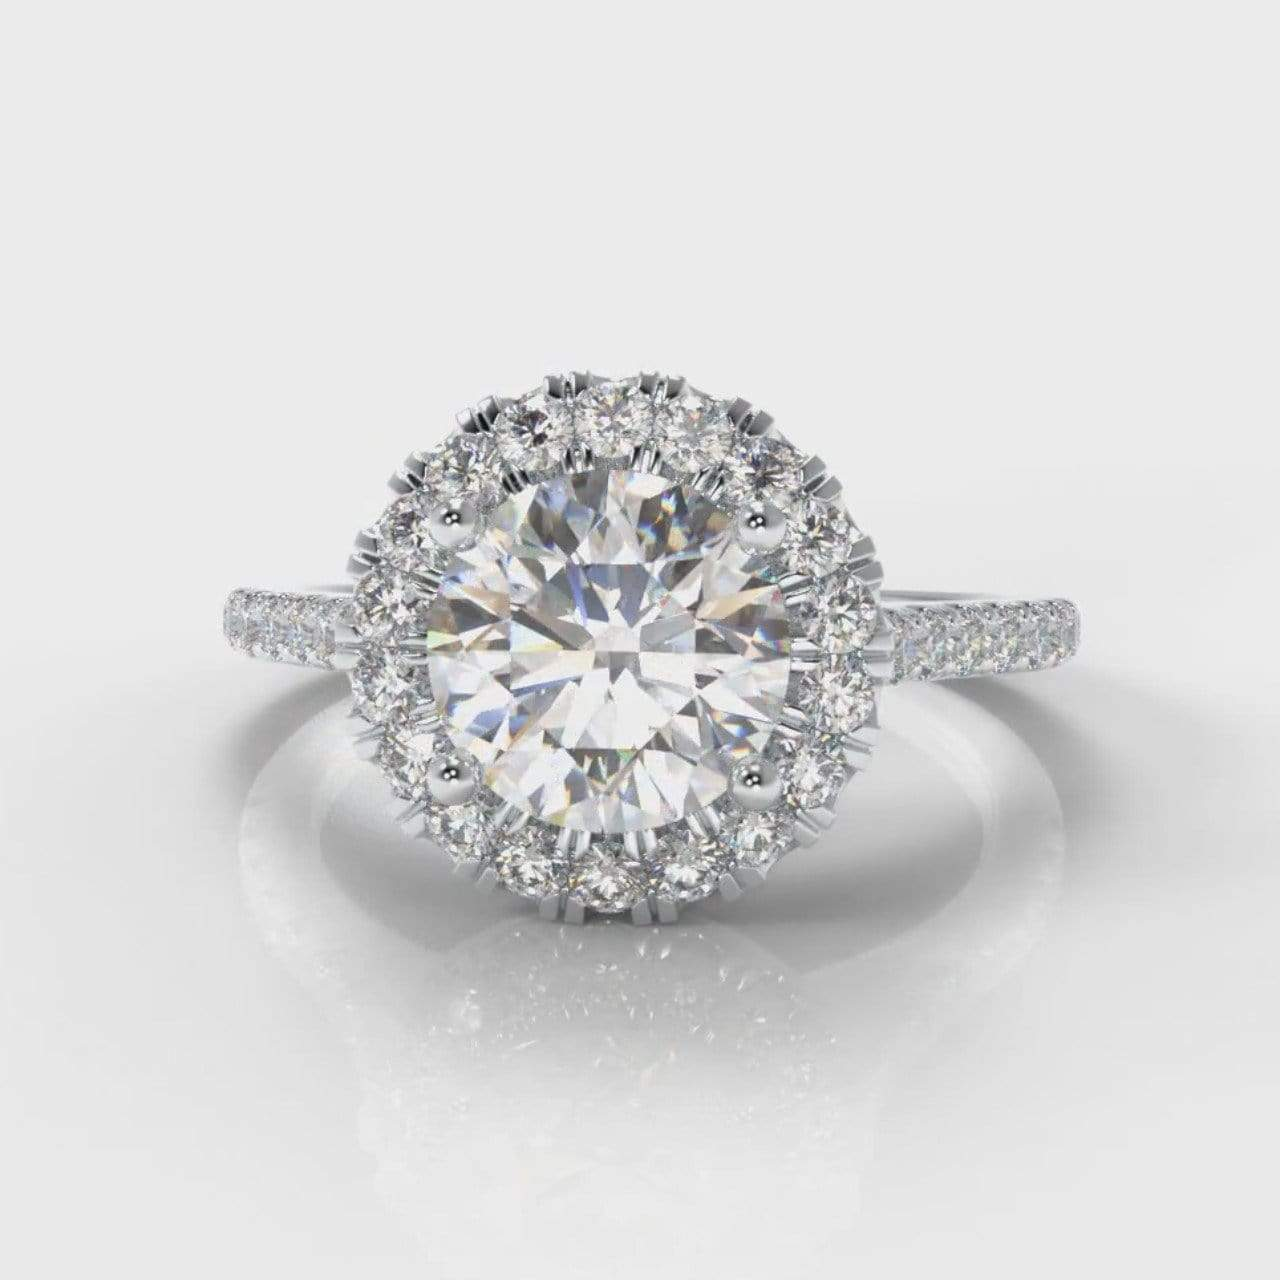 Fine Castle Halo Round Brilliant Cut Lab Diamond Engagement Ring